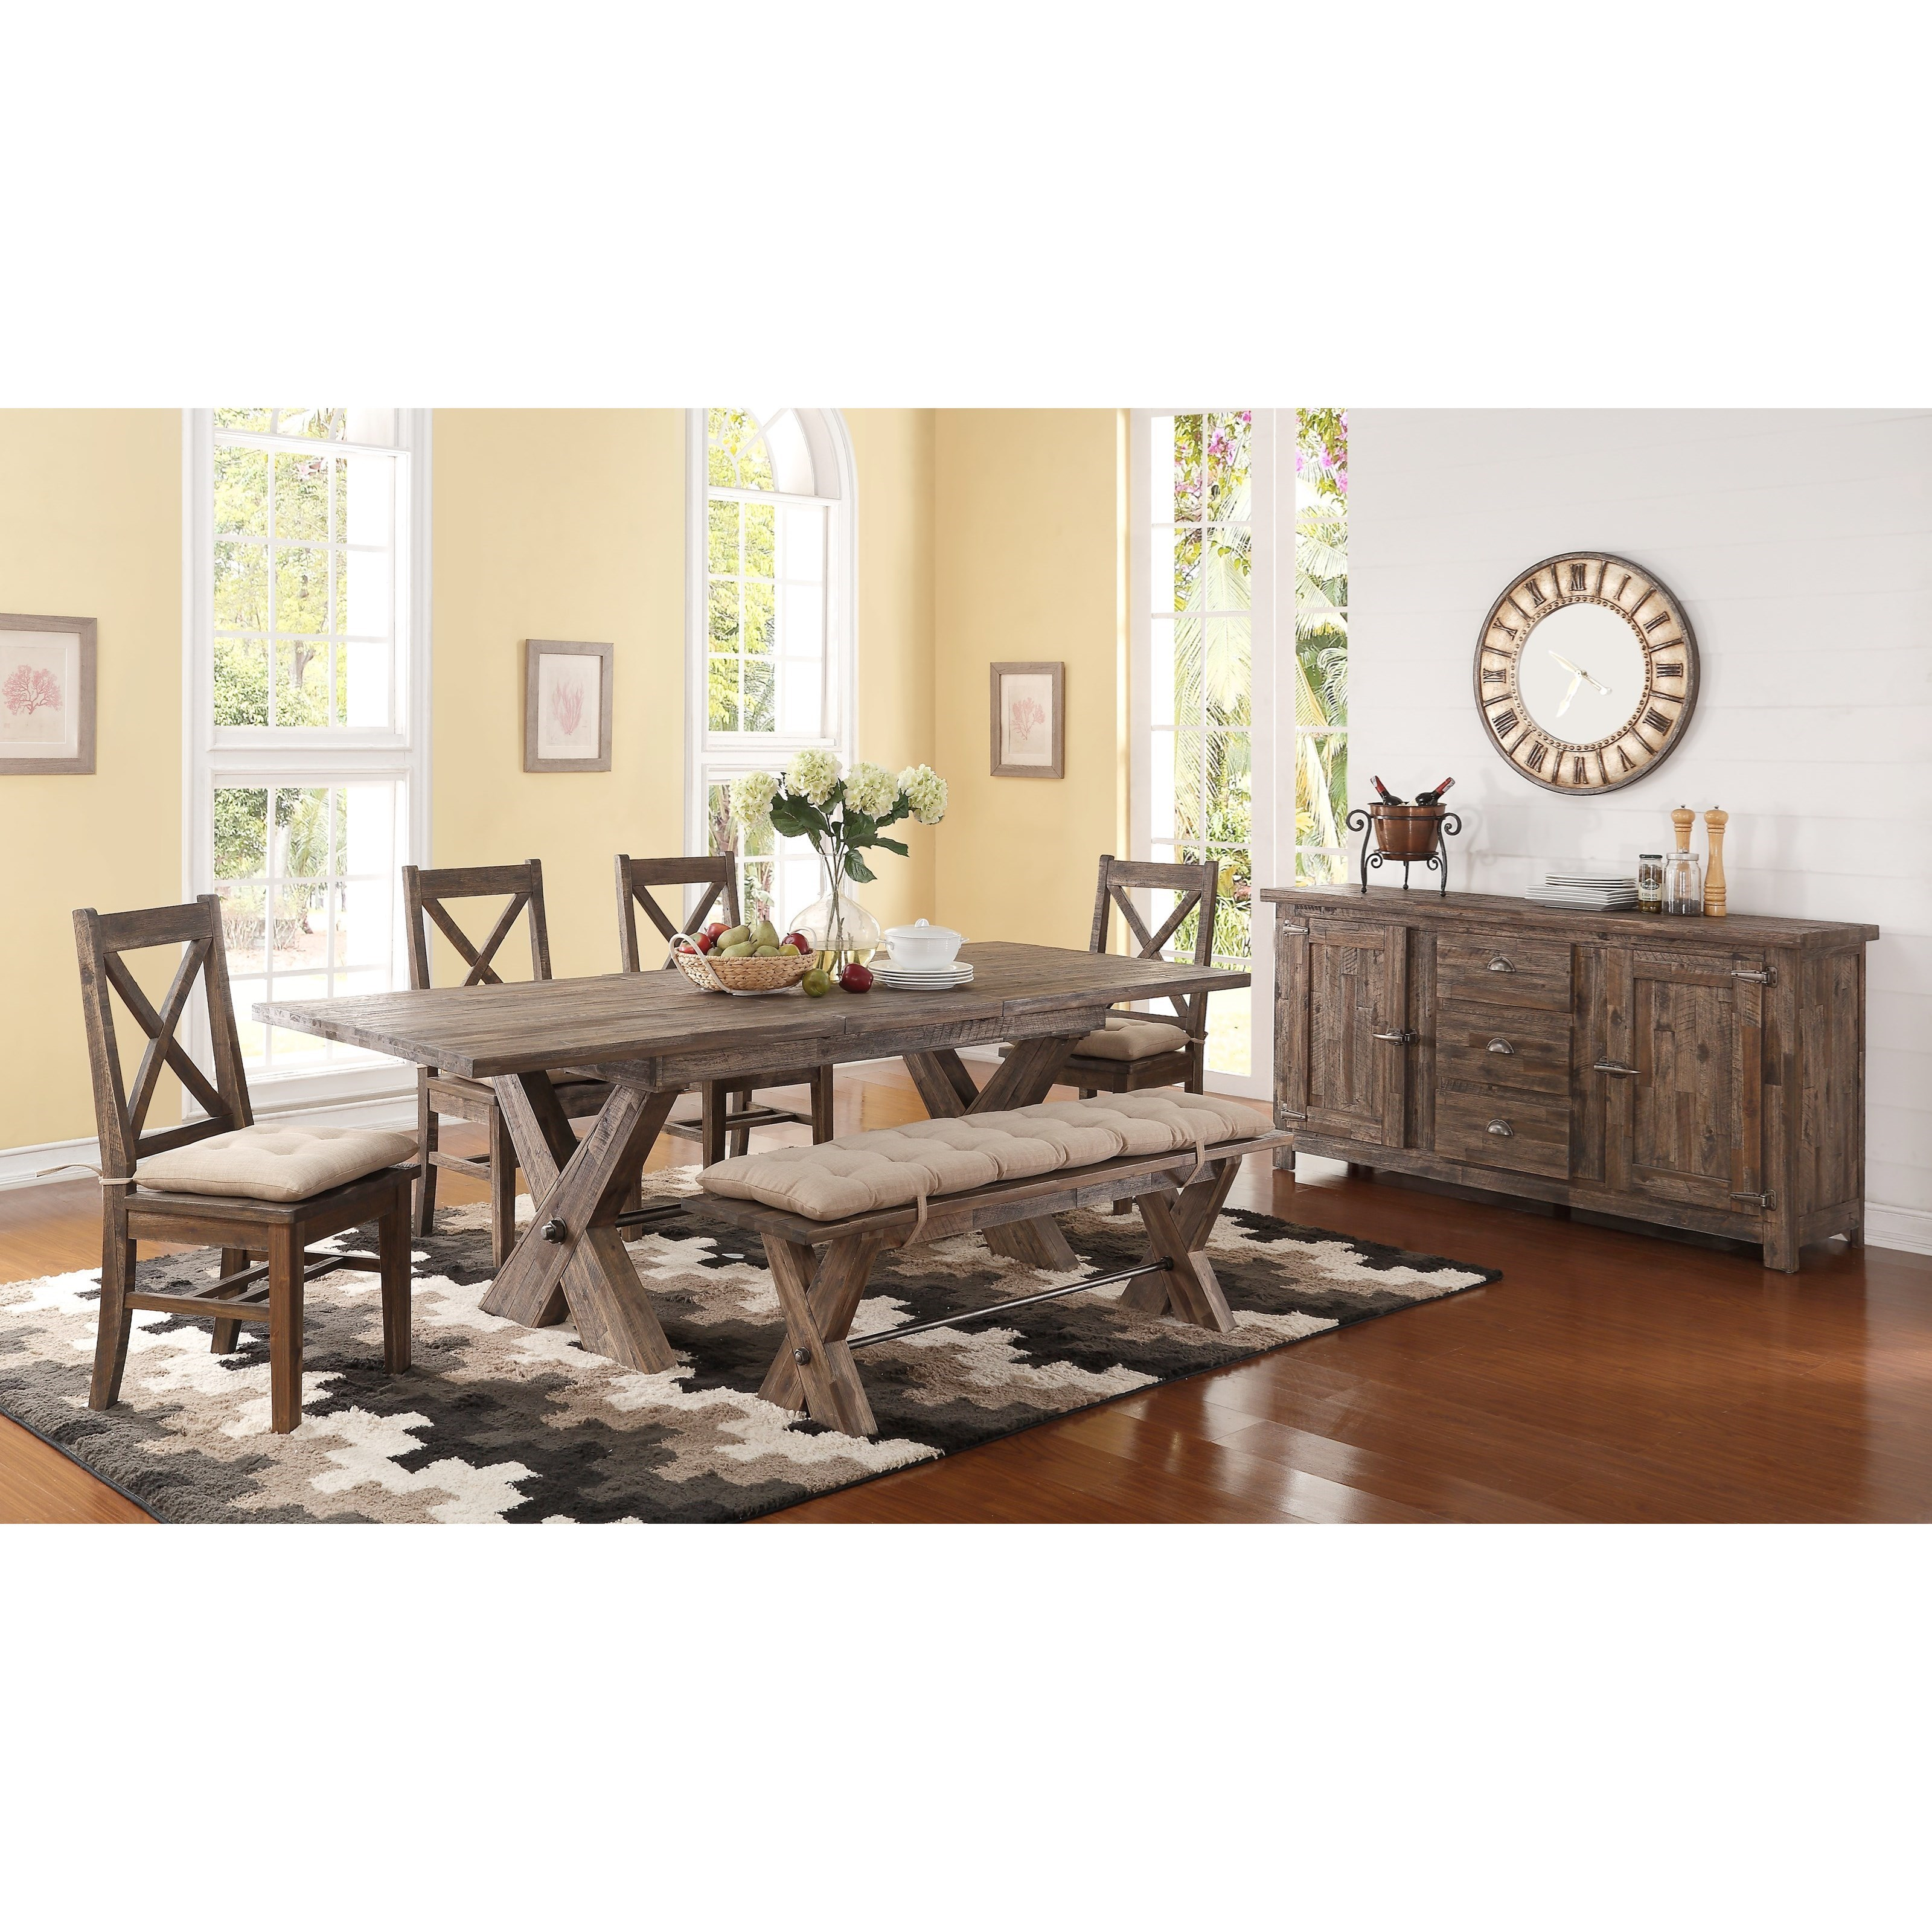 Perfect ... New Classic Tuscany Park6 Piece Trestle Dining Table Set